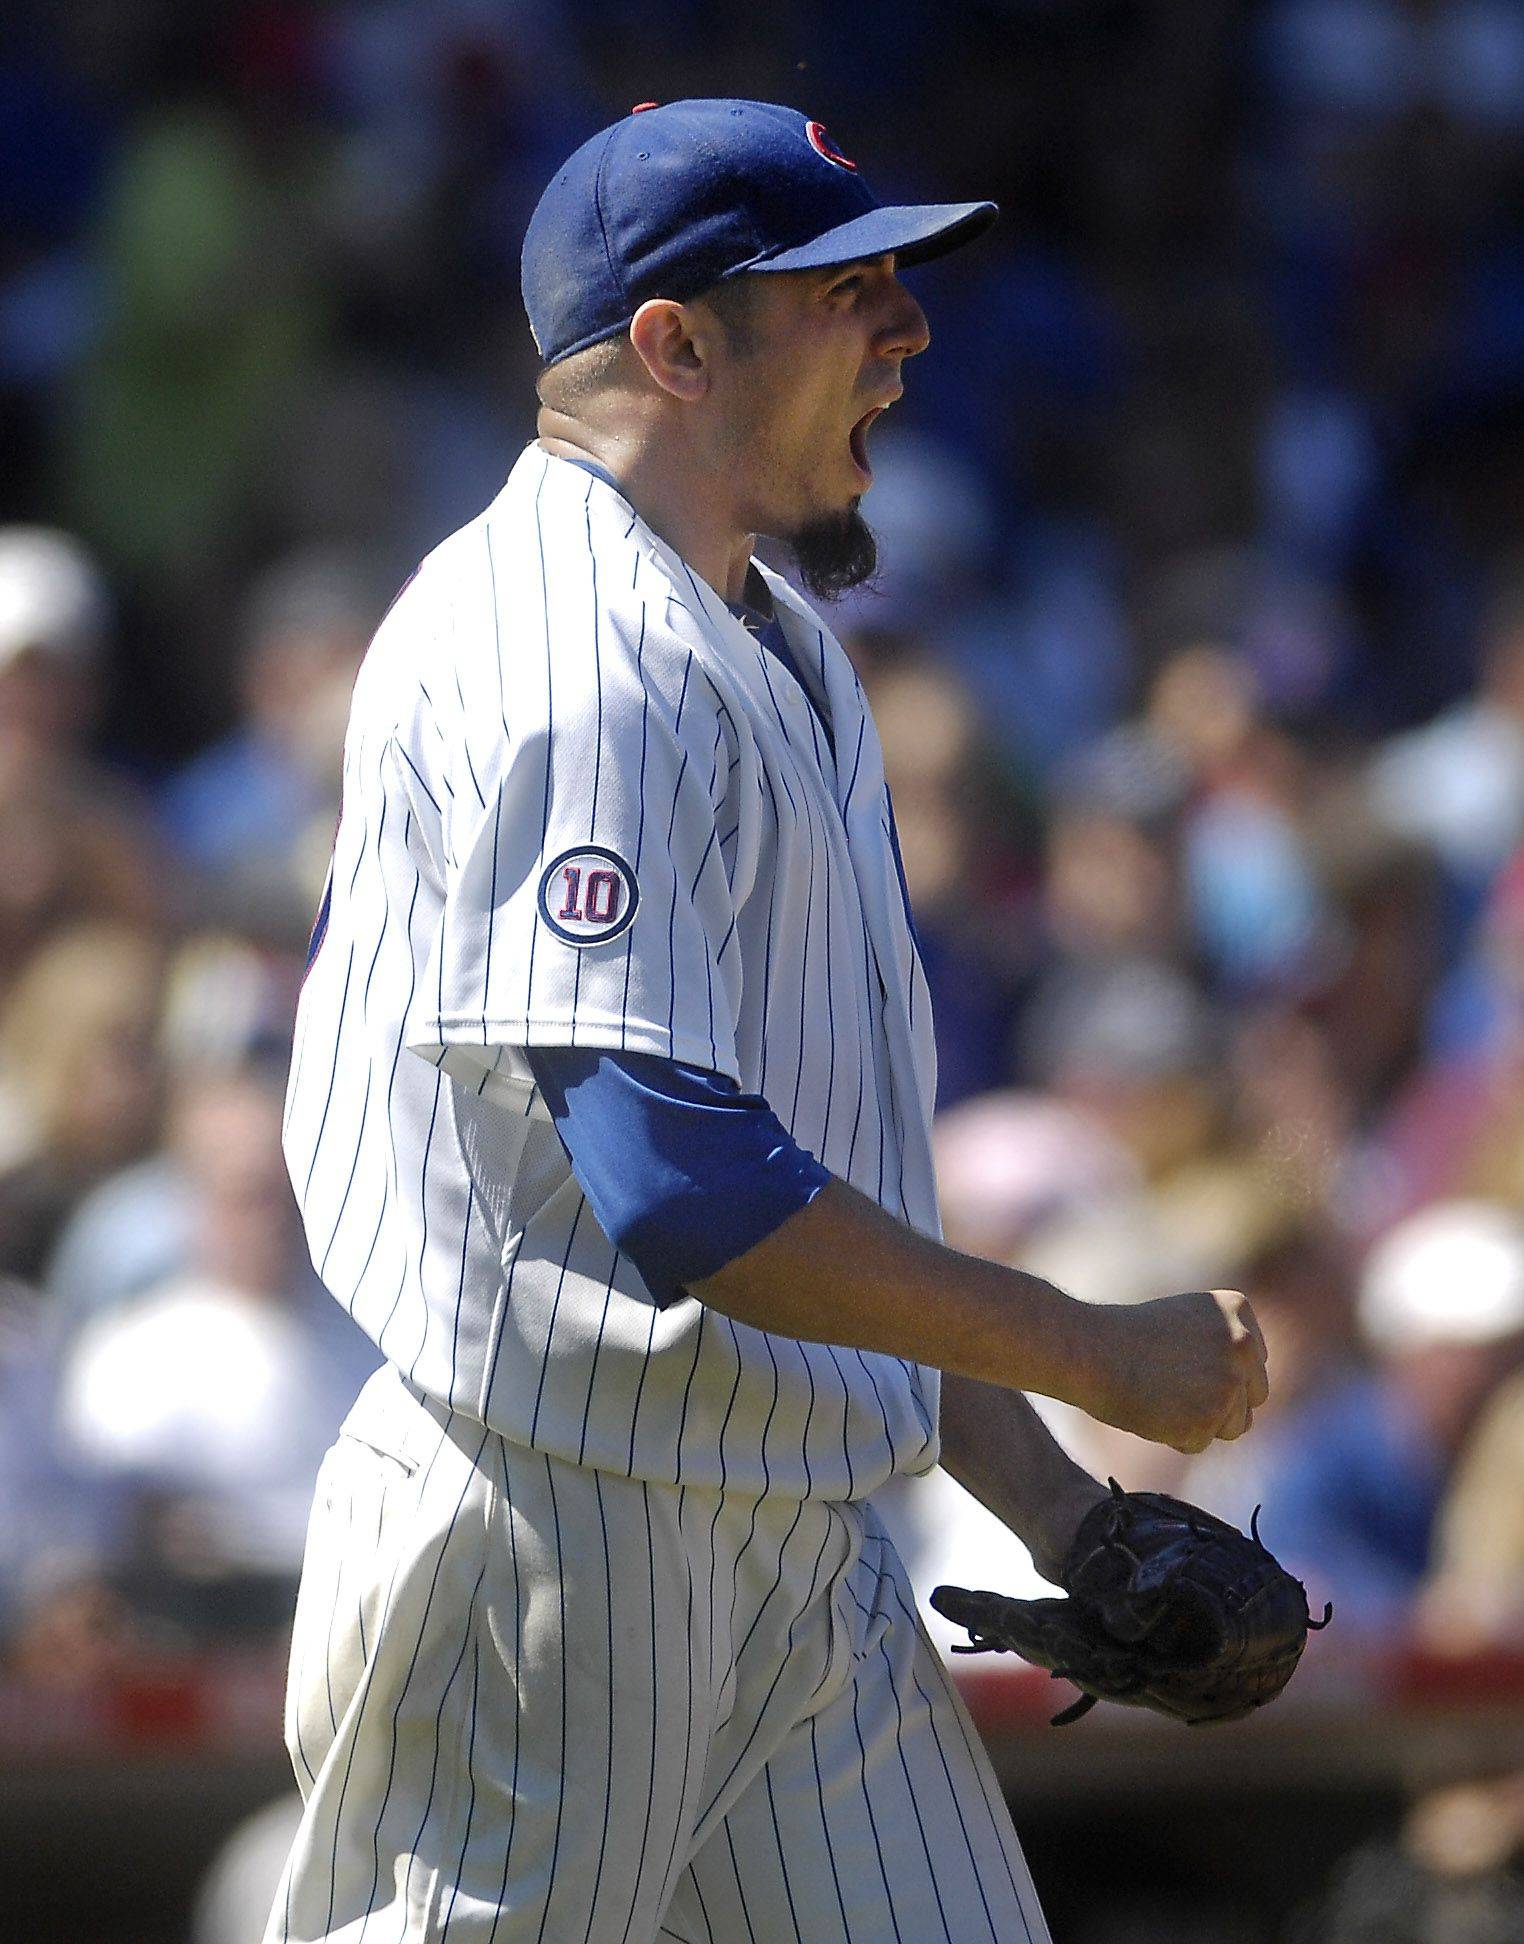 Chicago Cubs starting pitcher Matt Garza lets out a scream after walking in a run with the bases loaded in the third inning.